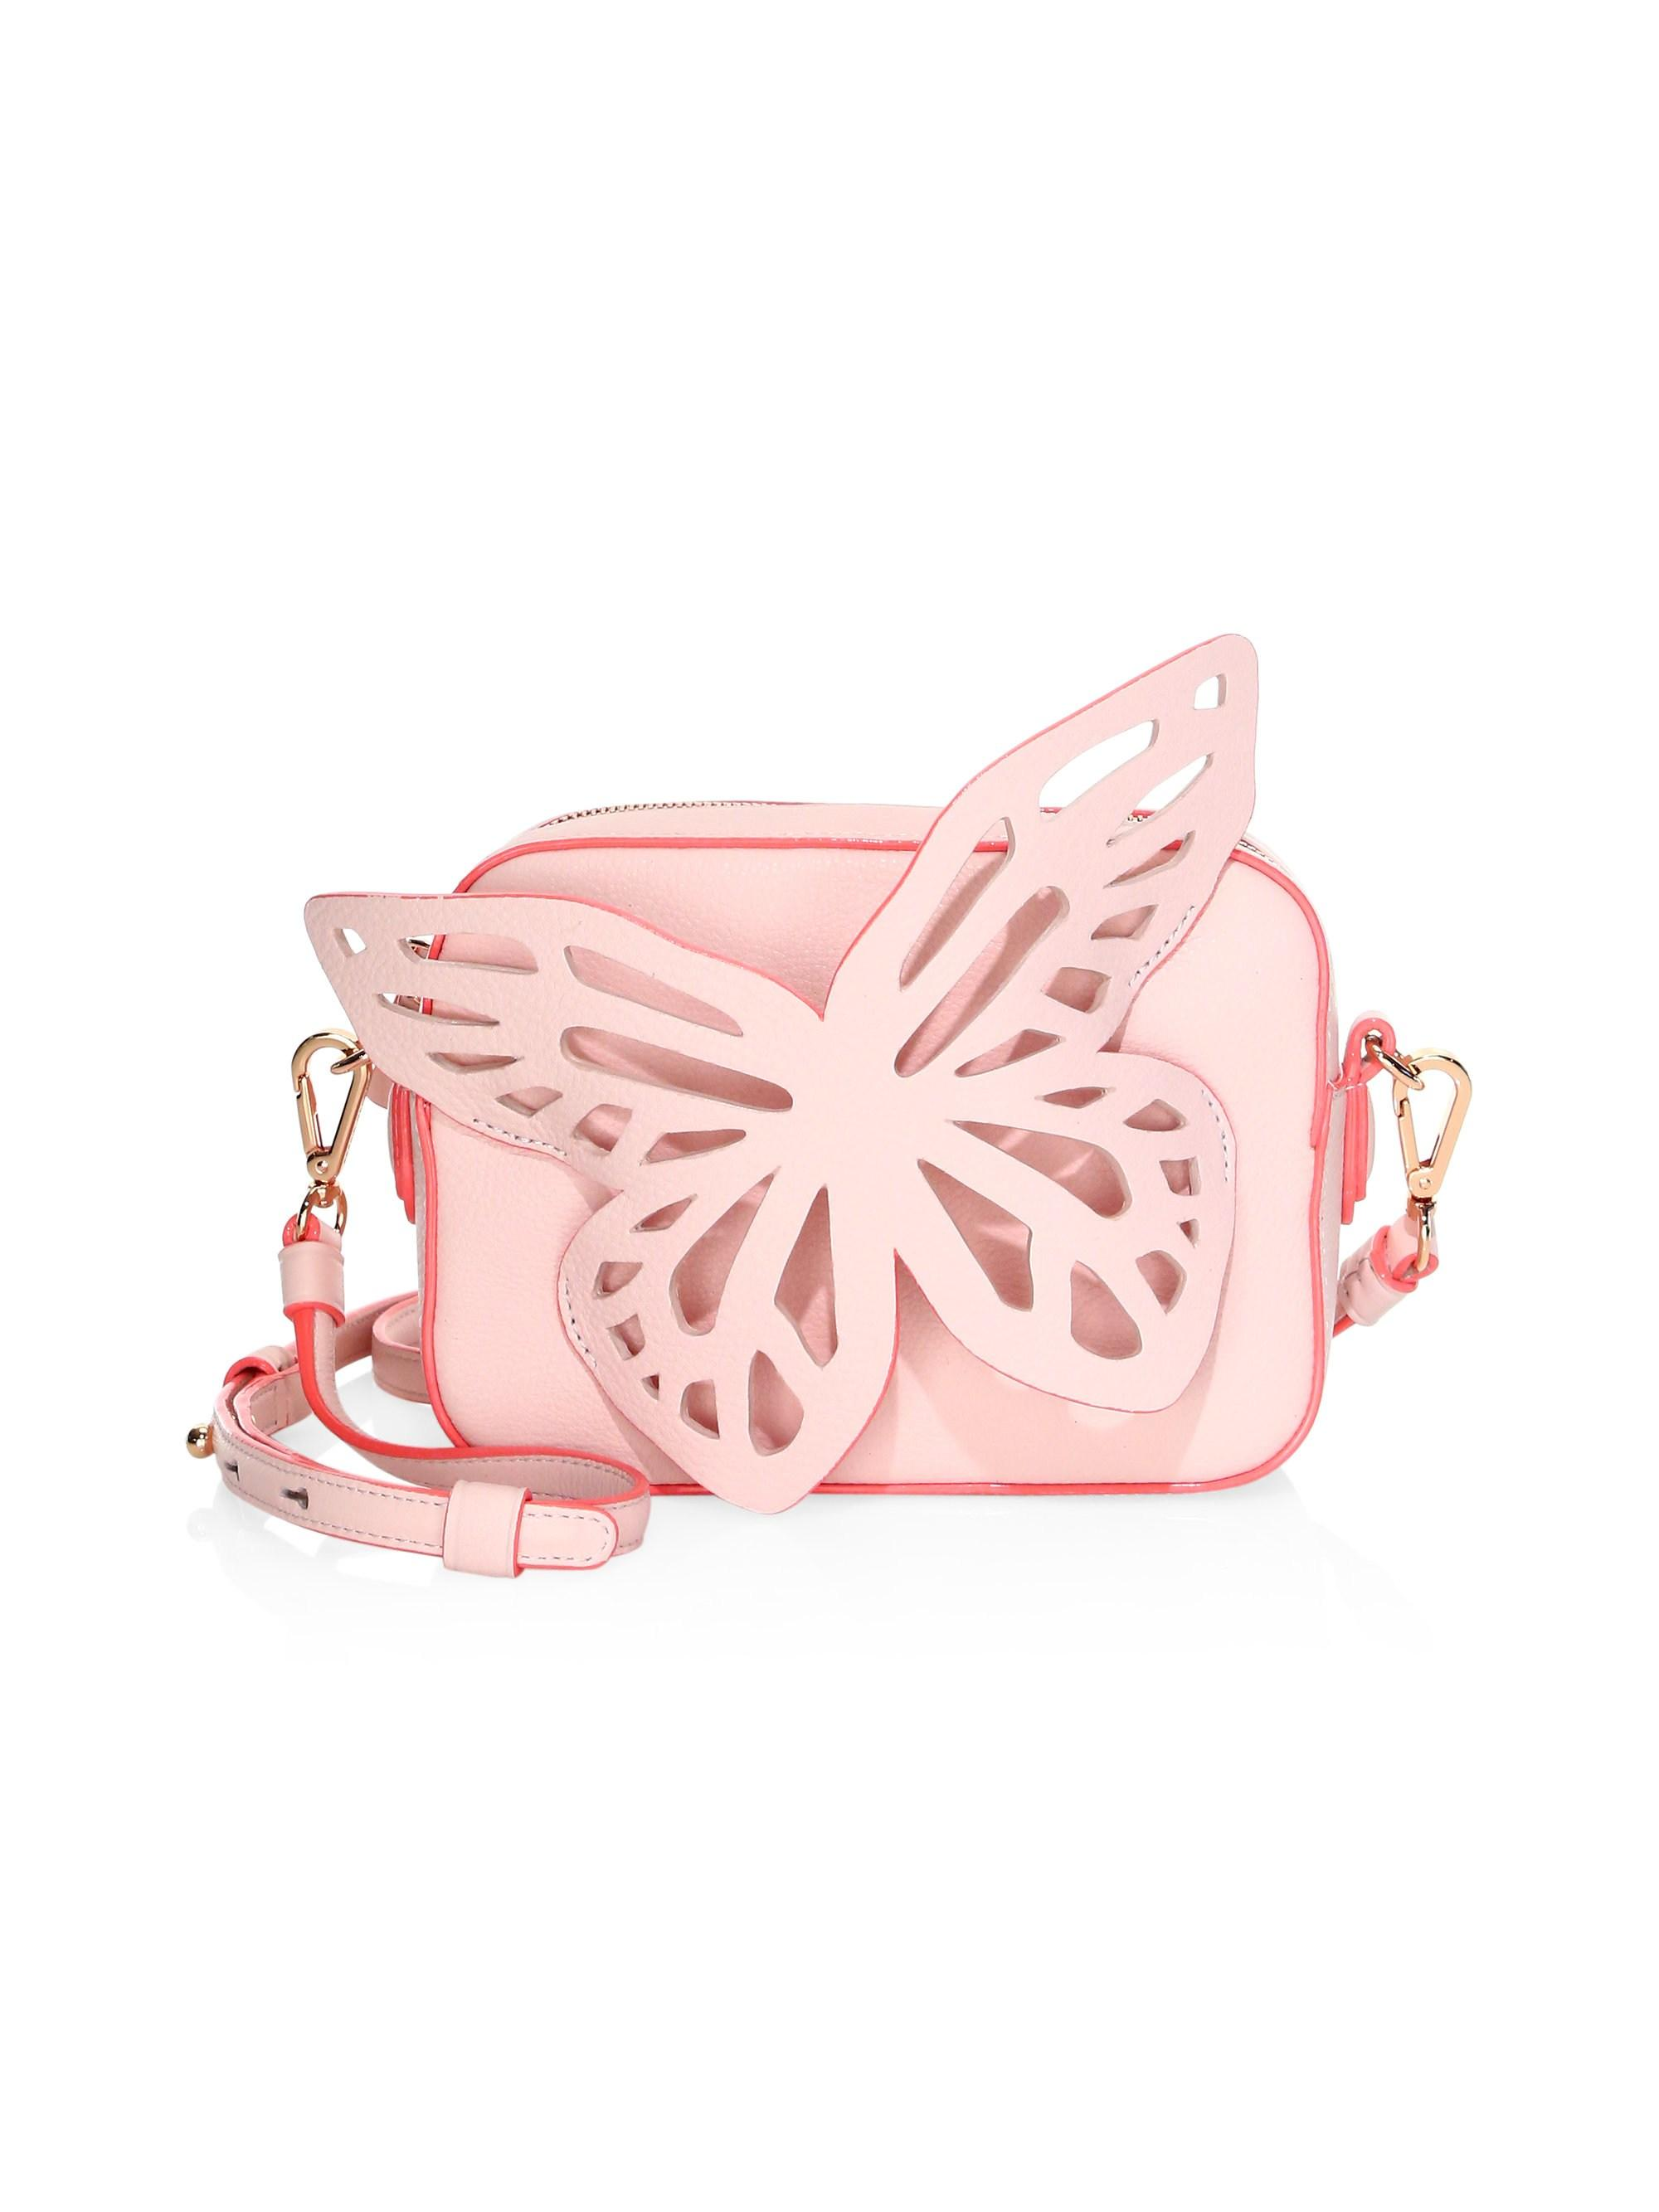 Lyst - Sophia Webster Flossy Butterfly Leather Camera Bag in Pink ... db0beff649902